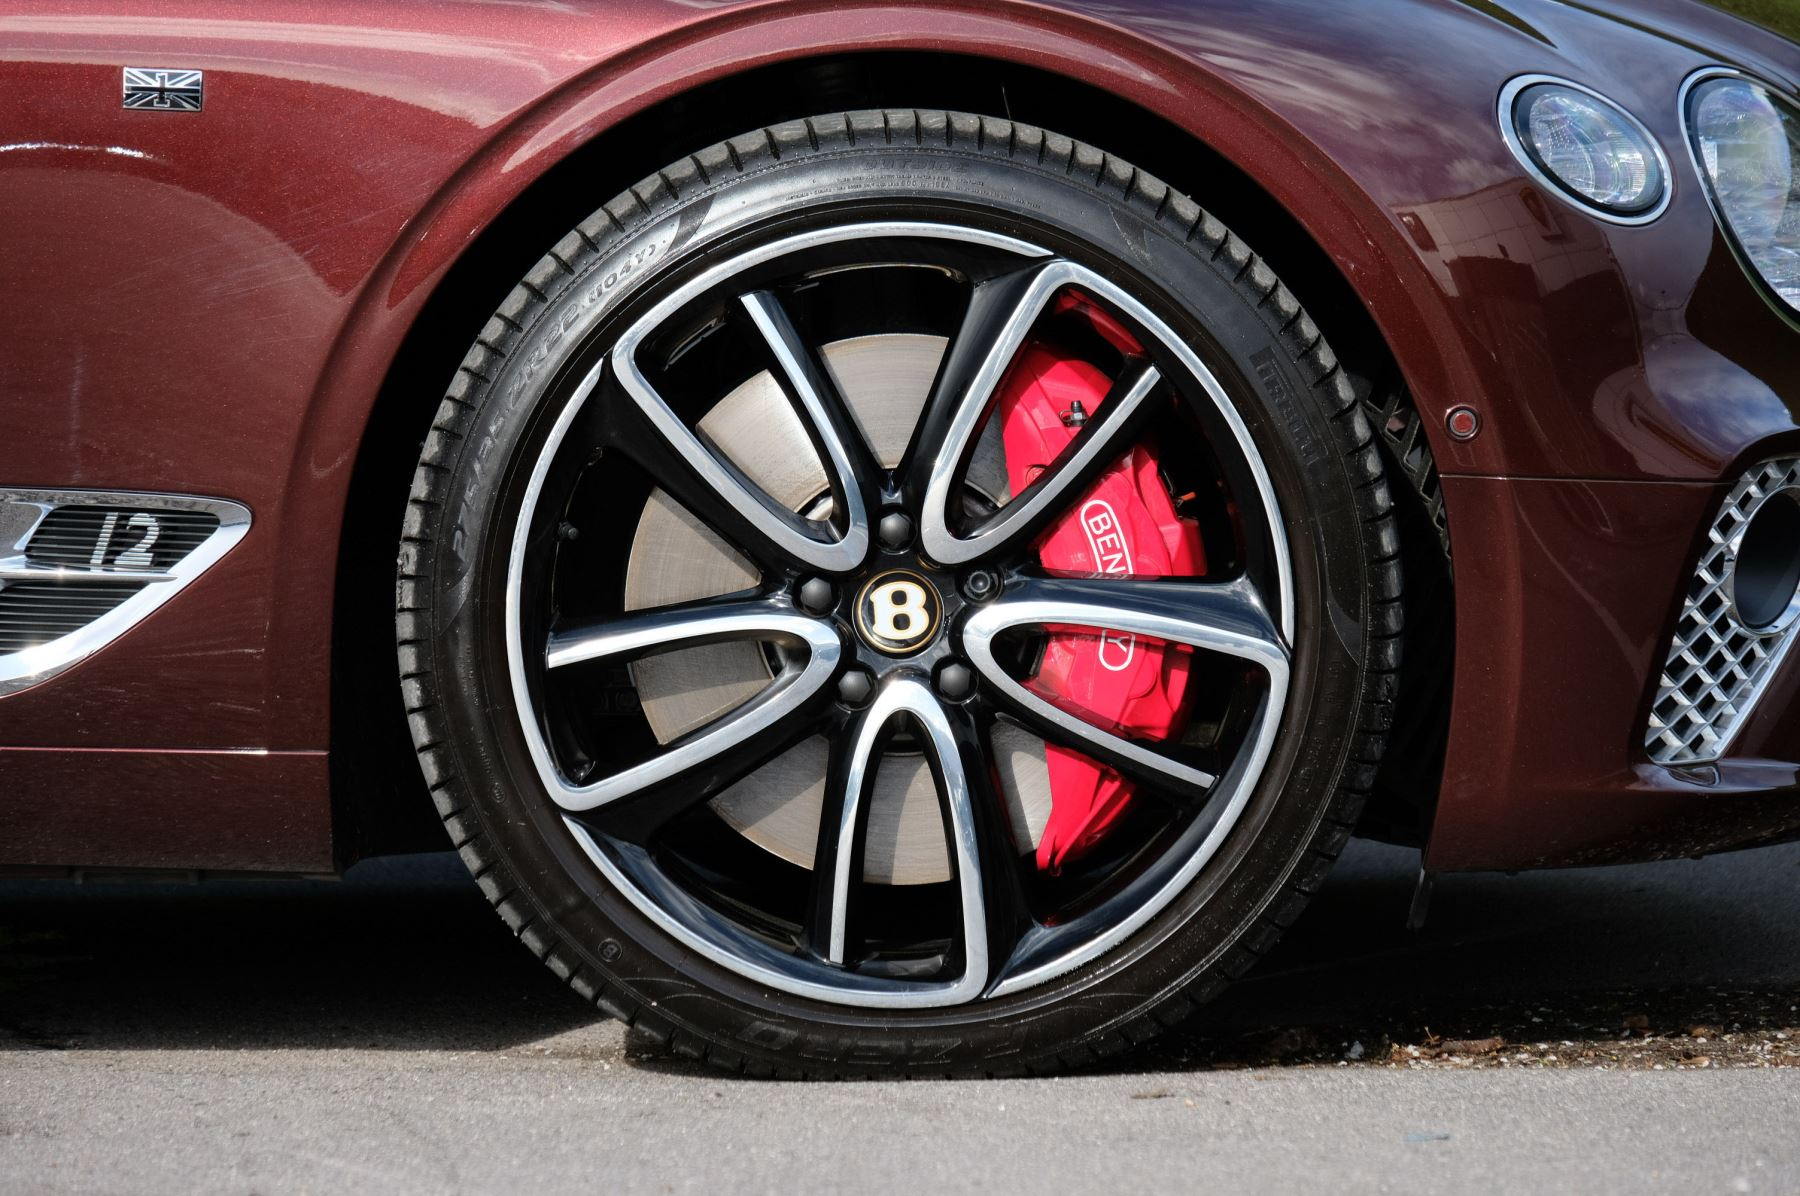 Bentley Continental GTC 6.0 W12 - First Edition Specification image 8